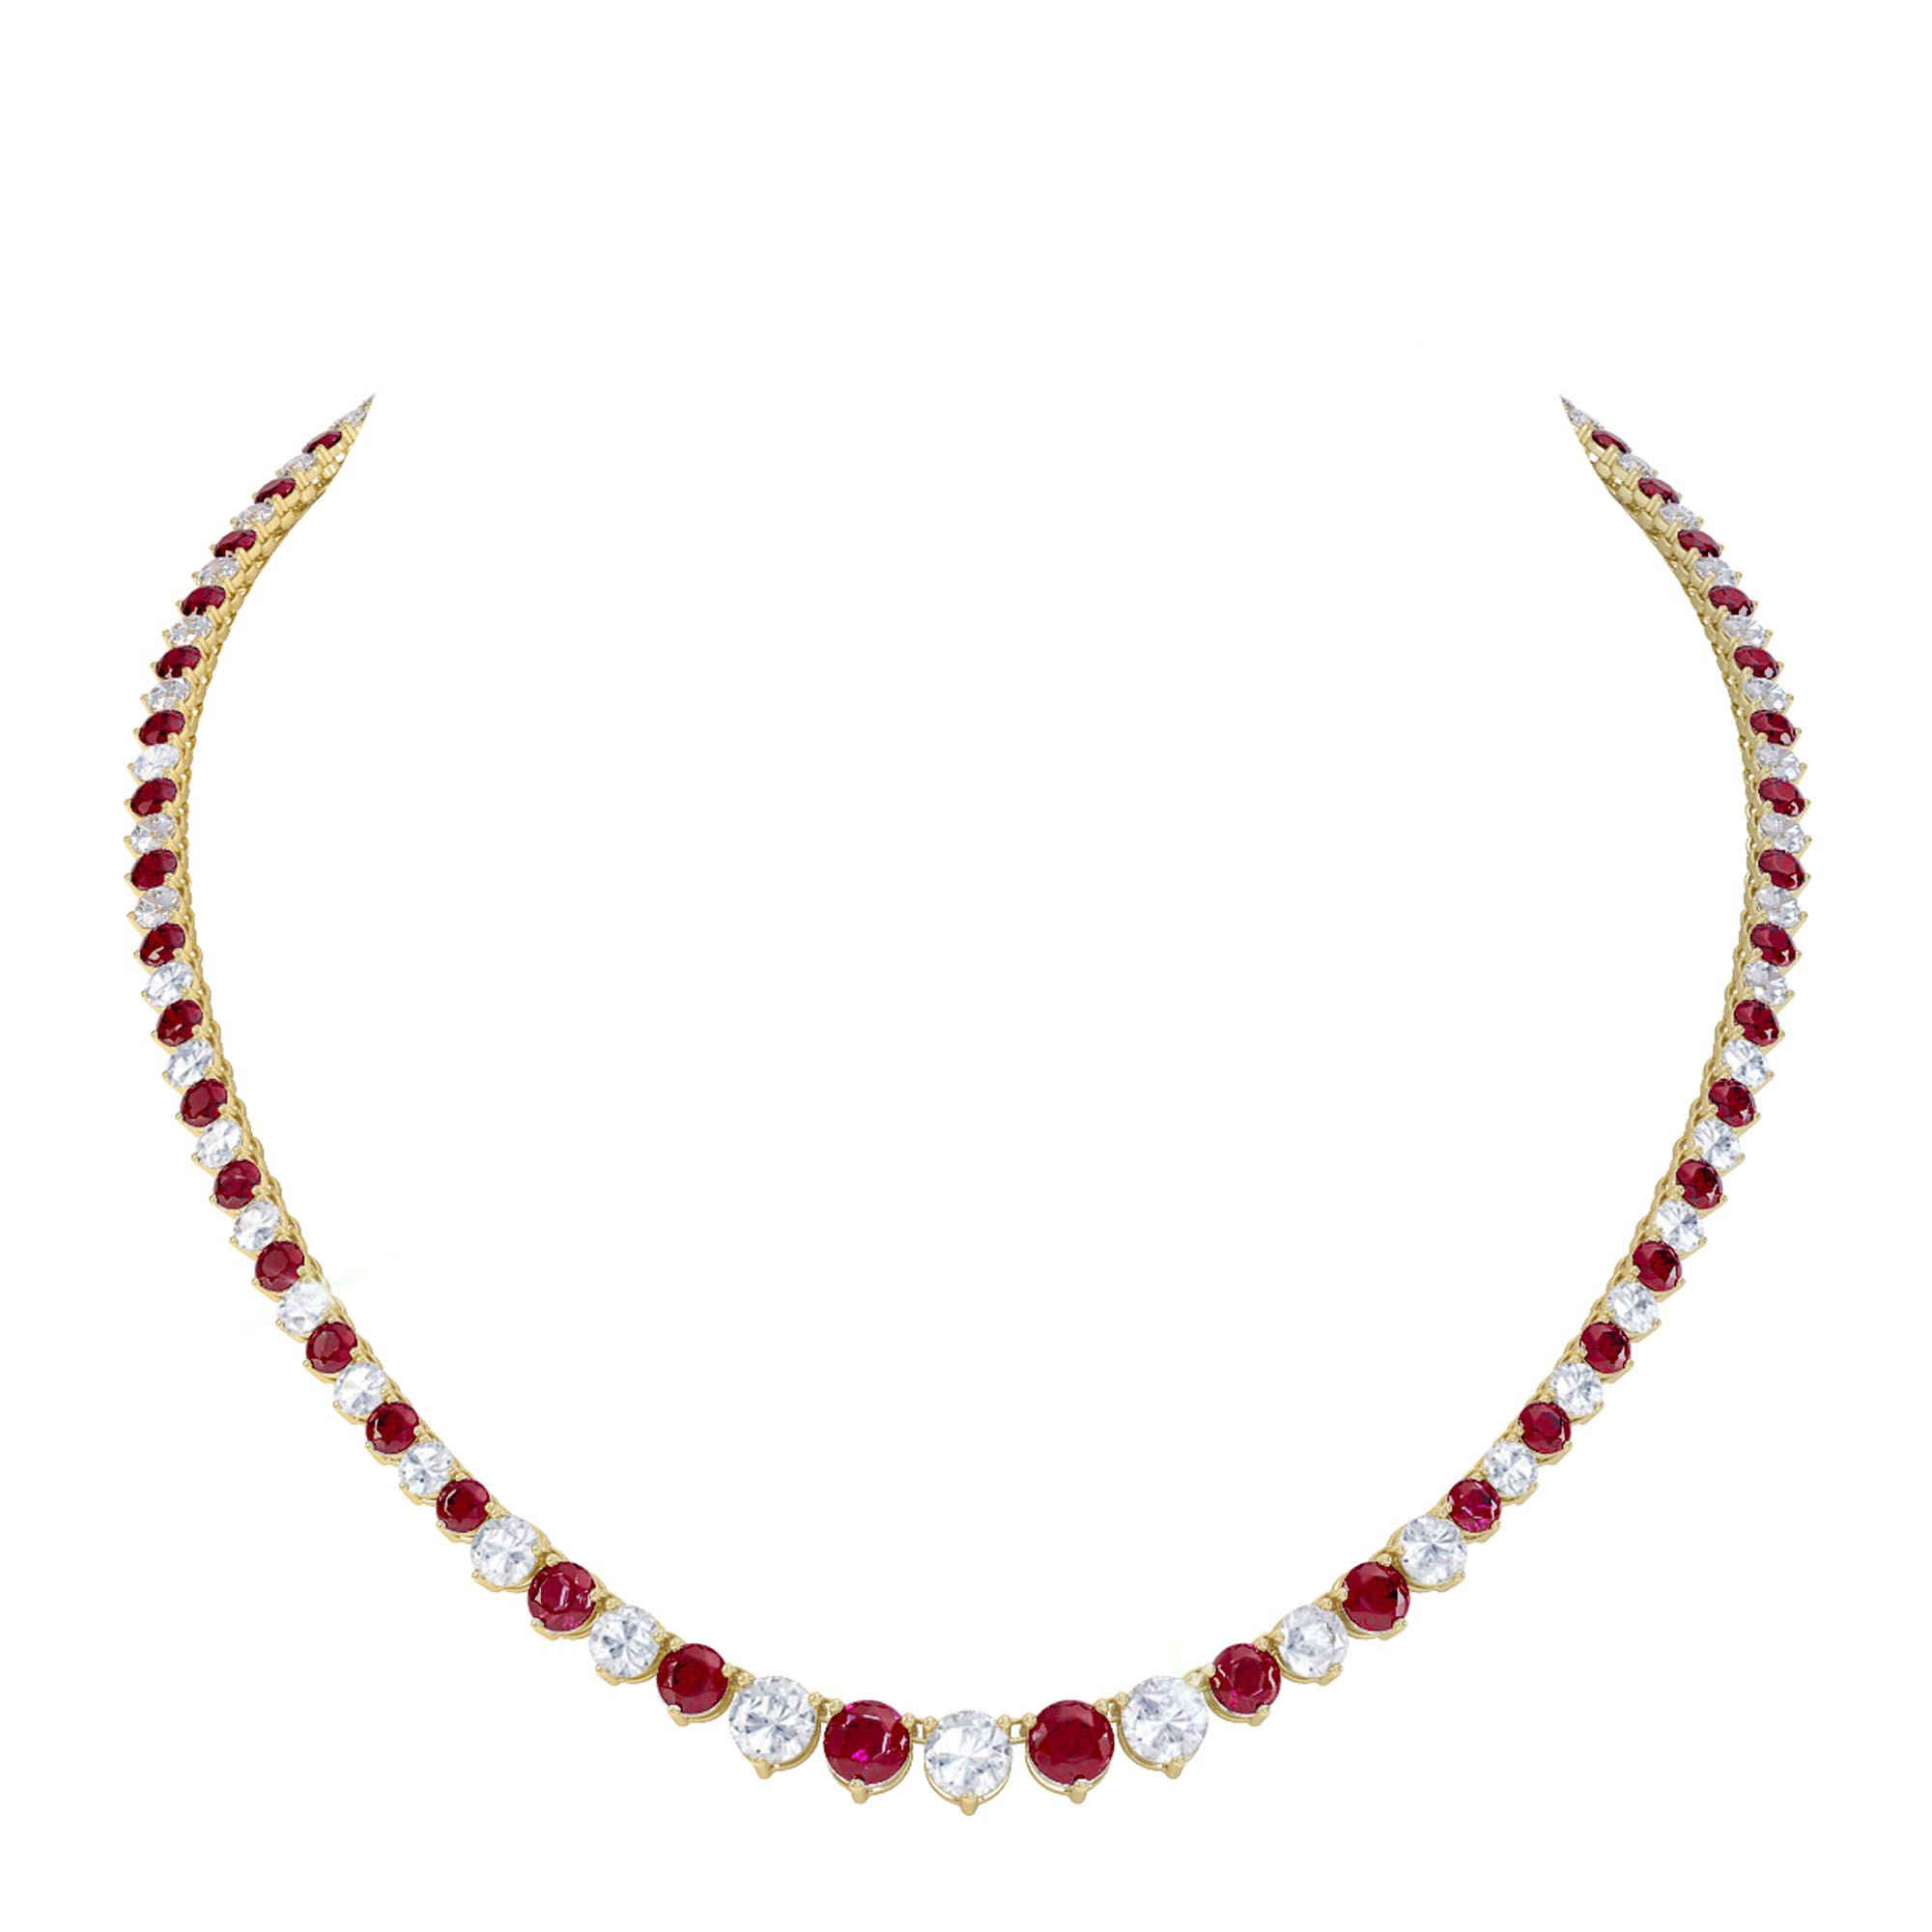 4c440ae210b1 Eternity Ruby 18ct Gold Vermeil Tennis Necklace Jian London Silver ...